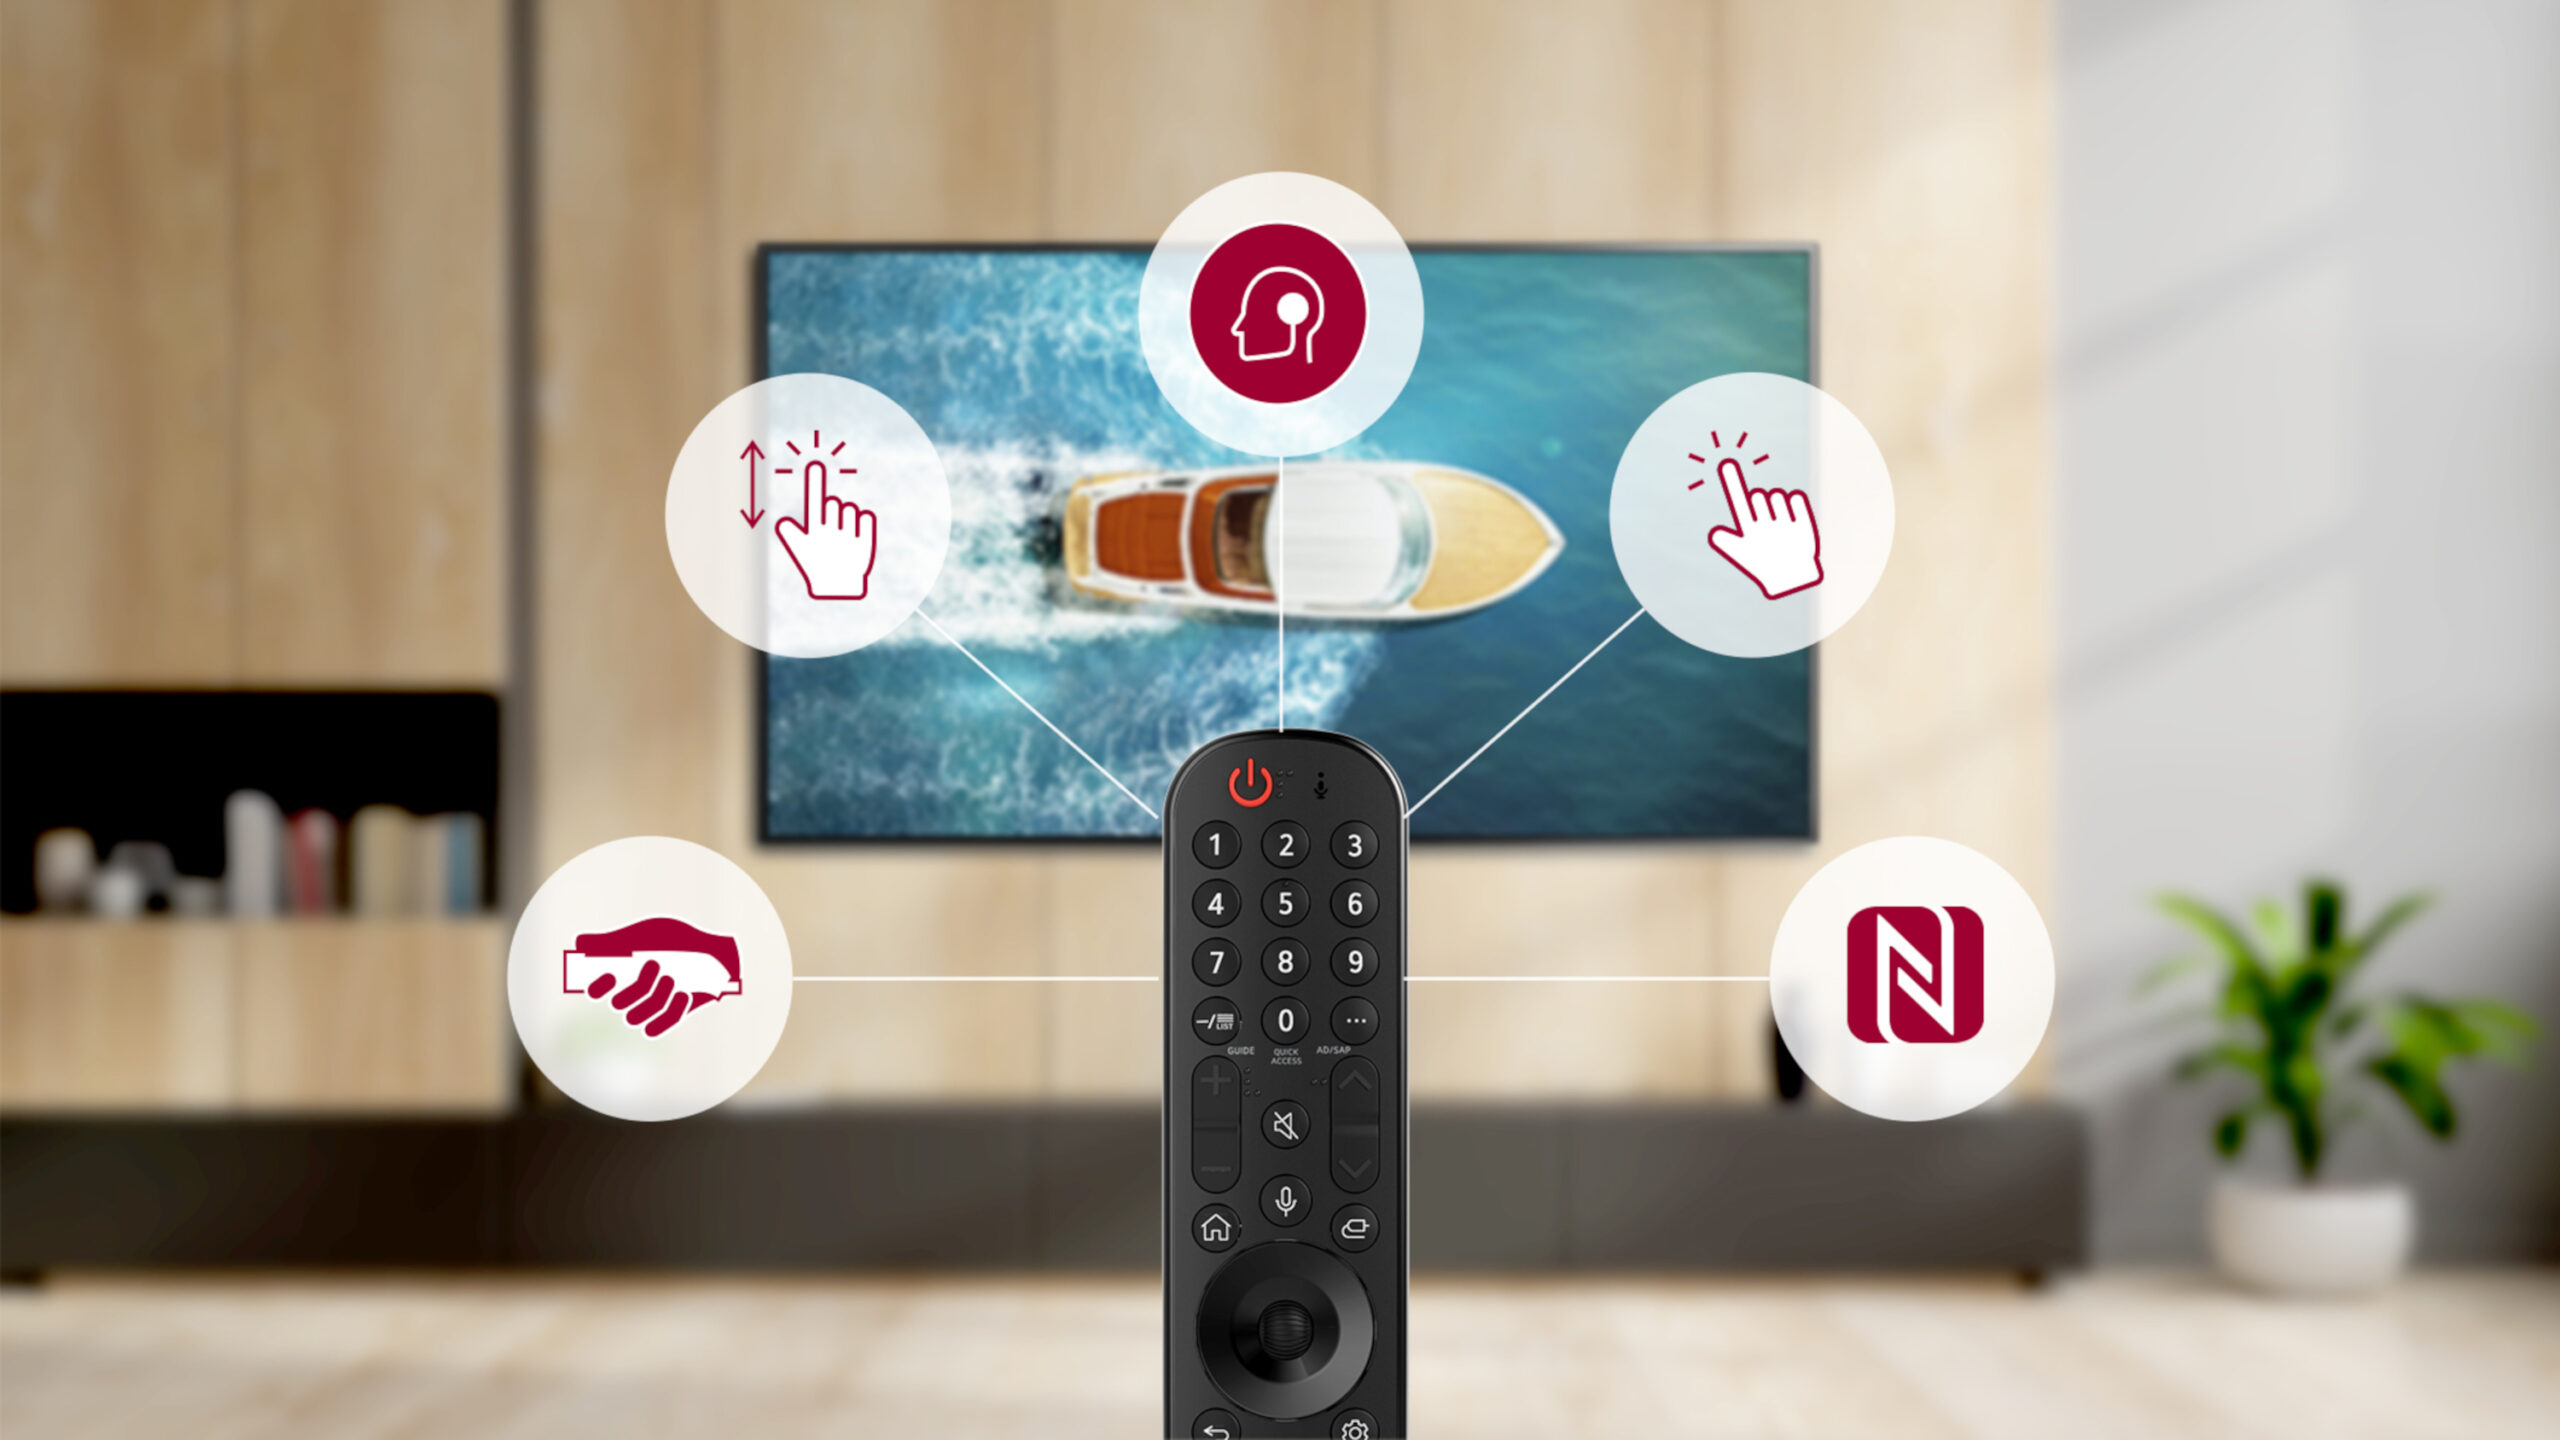 LG's Magic Remote with icons representing its user-friendly functions for quick and intuitive access to LG webOS 6.0, while an LG TV plays in the background.